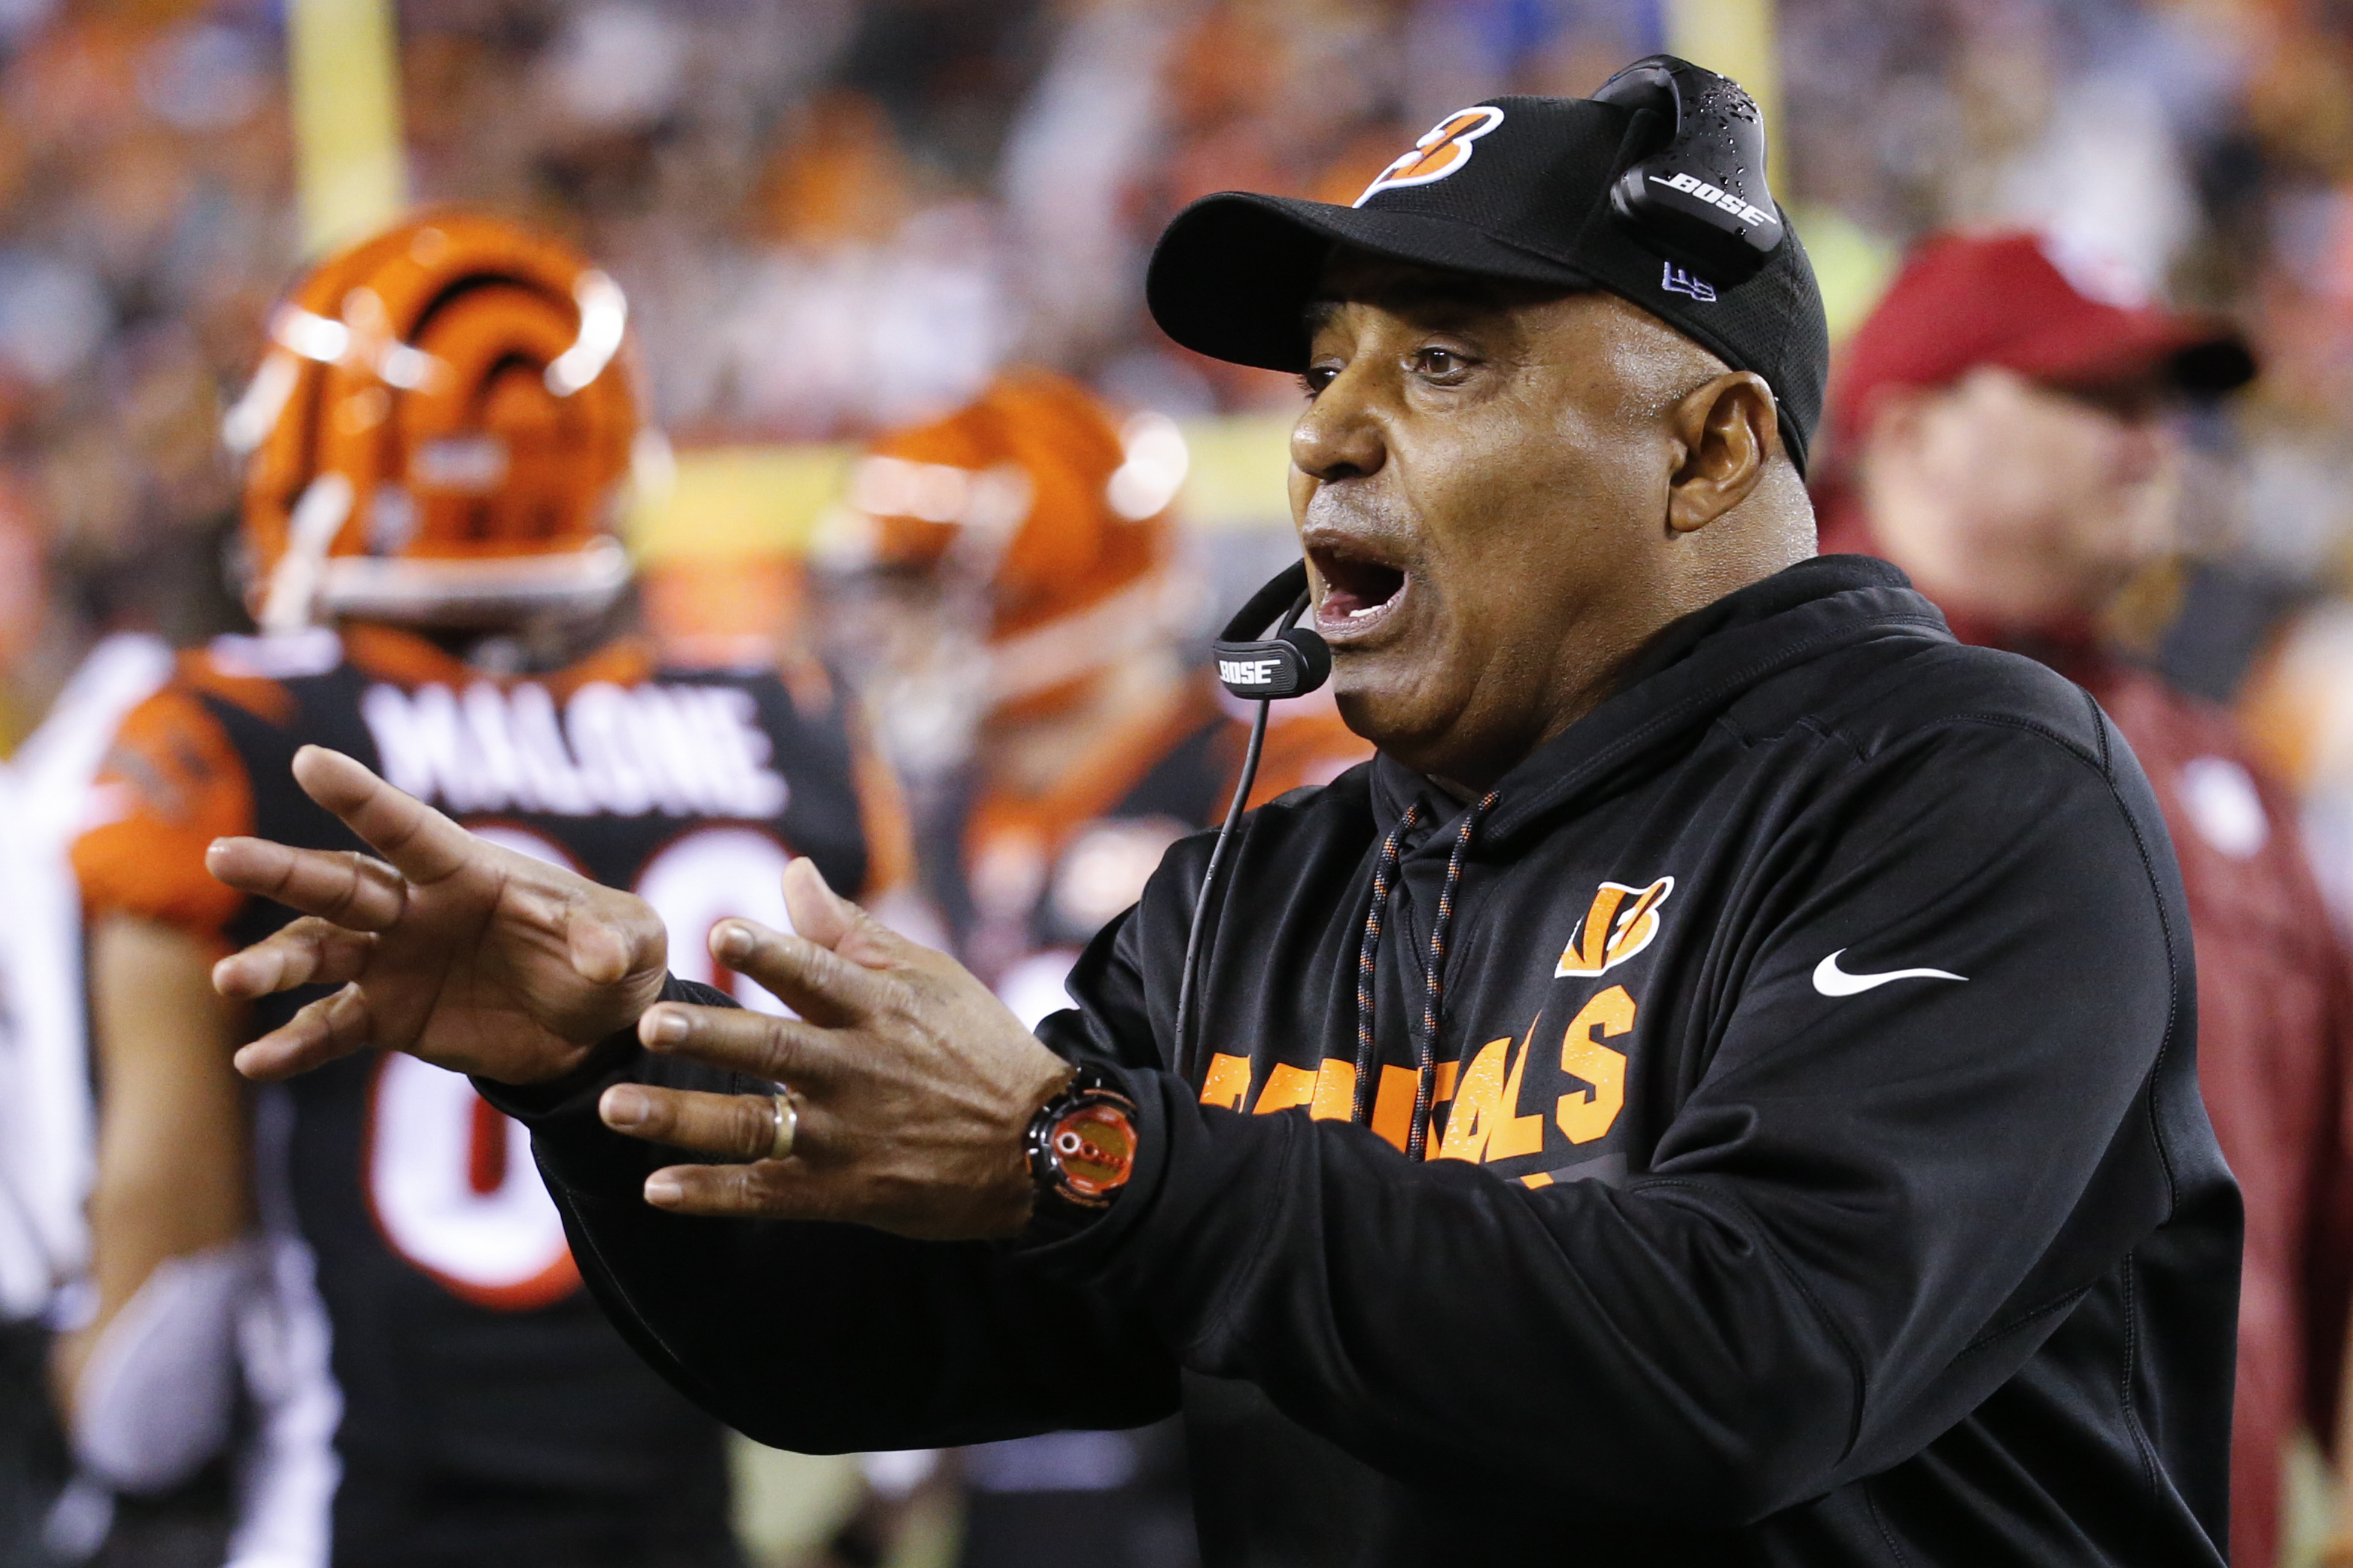 Cincinnati Bengals head coach Marvin Lewis works the sidelines in the second half of an NFL football game against the Pittsburgh Steelers, Monday, Dec. 4, 2017, in Cincinnati. (AP Photo/Frank Victores)